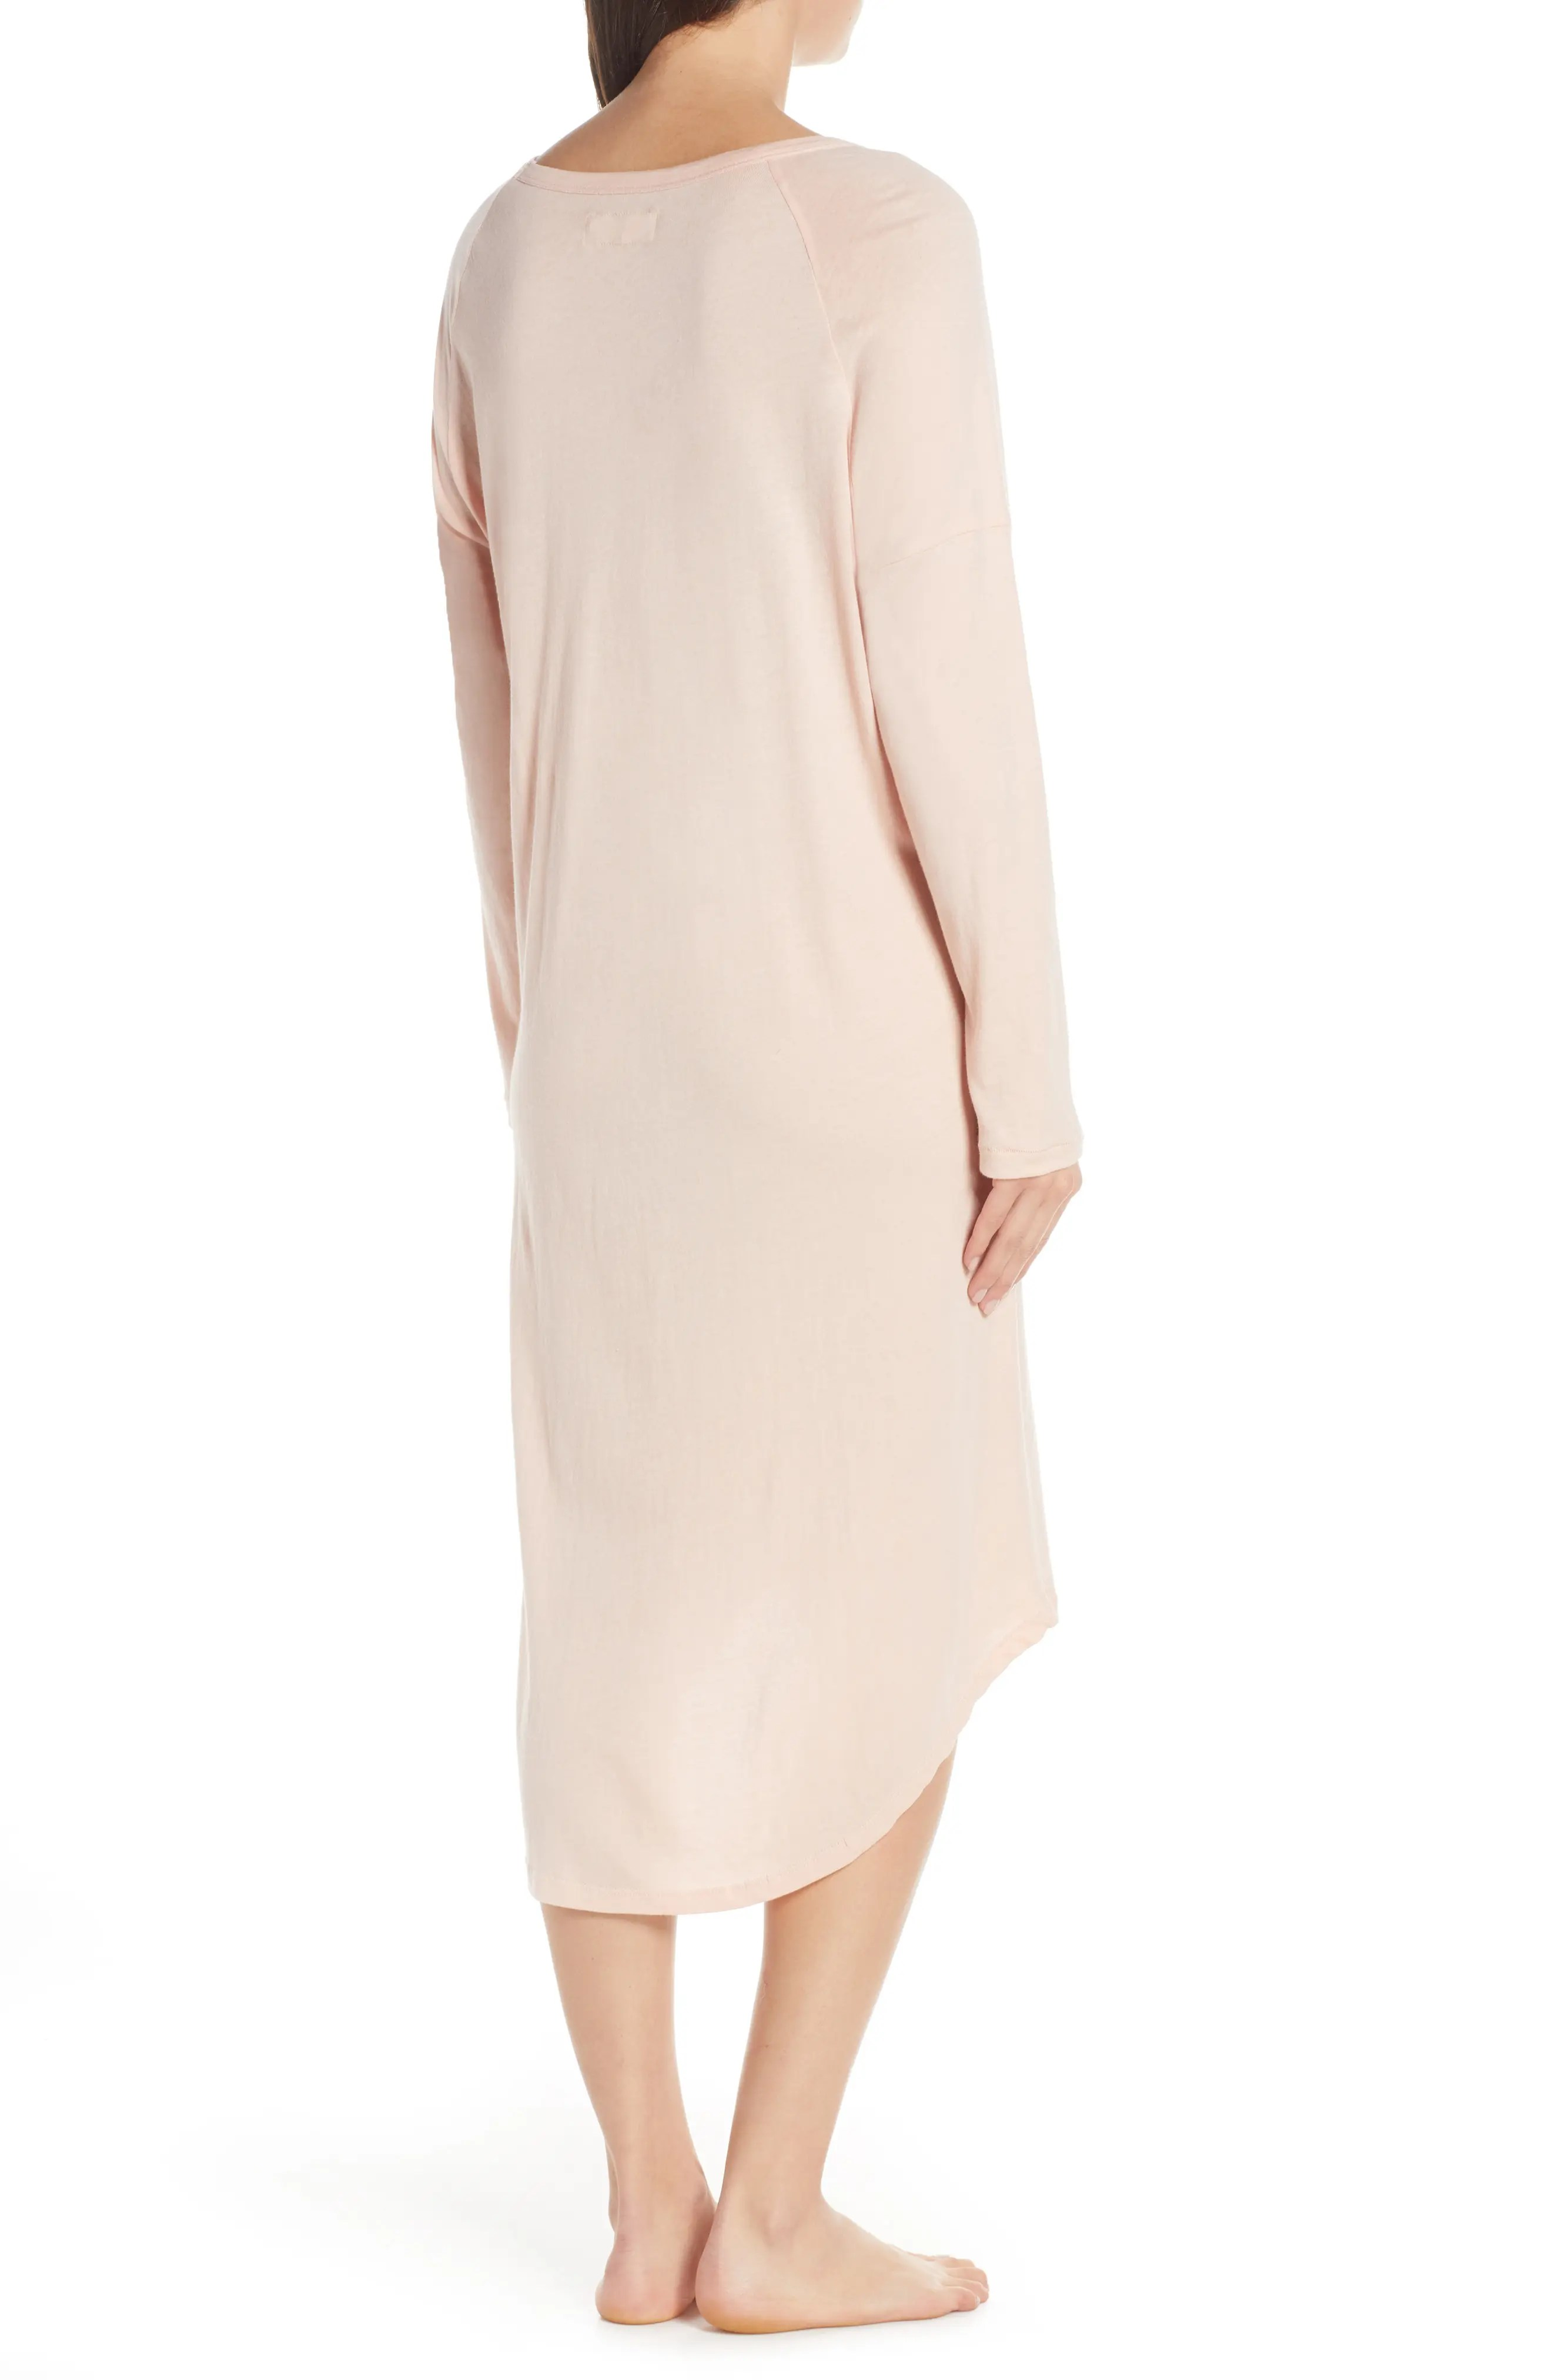 the nightshirt long nightgown